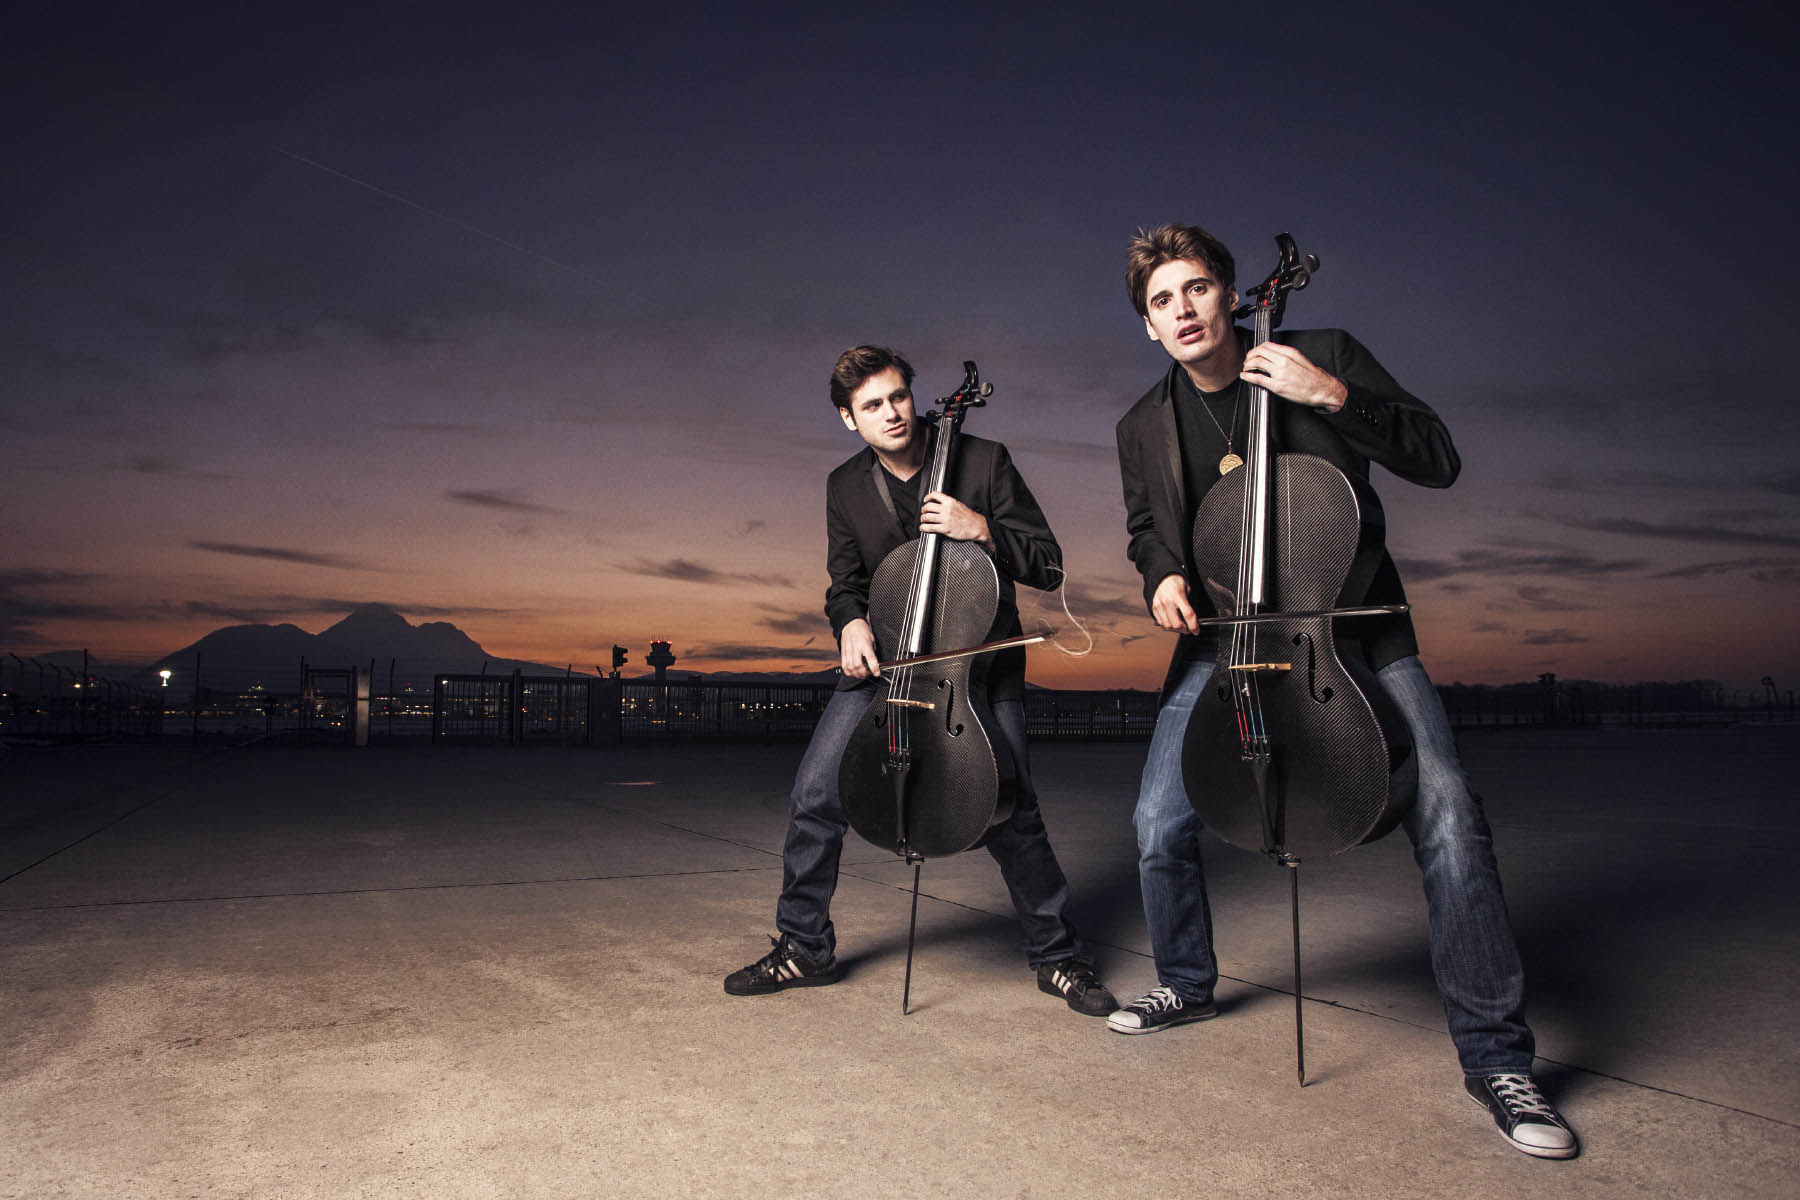 2Cellos plays Welcome to the Jungle: The Best Thing I Watched This Week